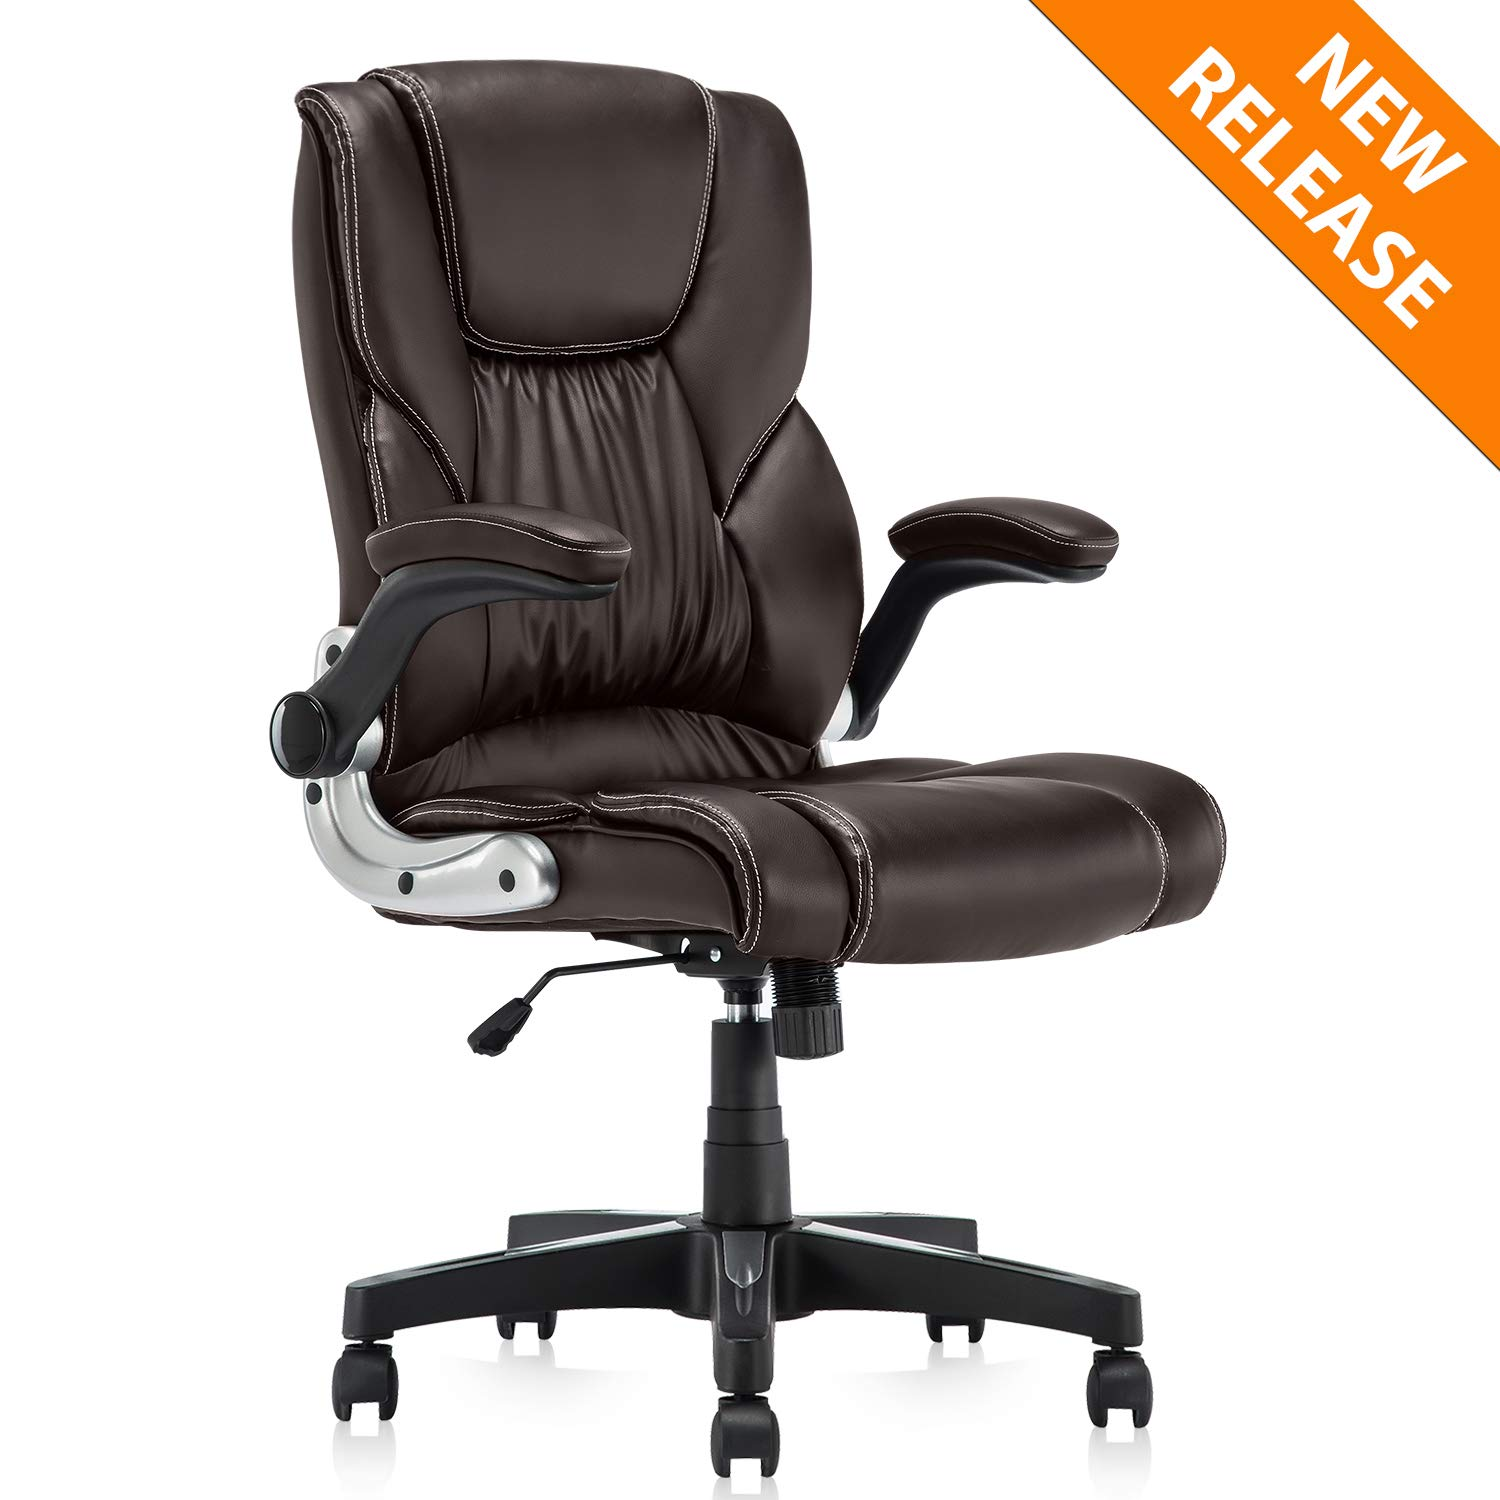 B2C2B Leather Executive Office Chair Ergonomic Computer Desk Chair with Wheels and arms Swivel Task Chair Gaming Chair with Lumbar Support Brown